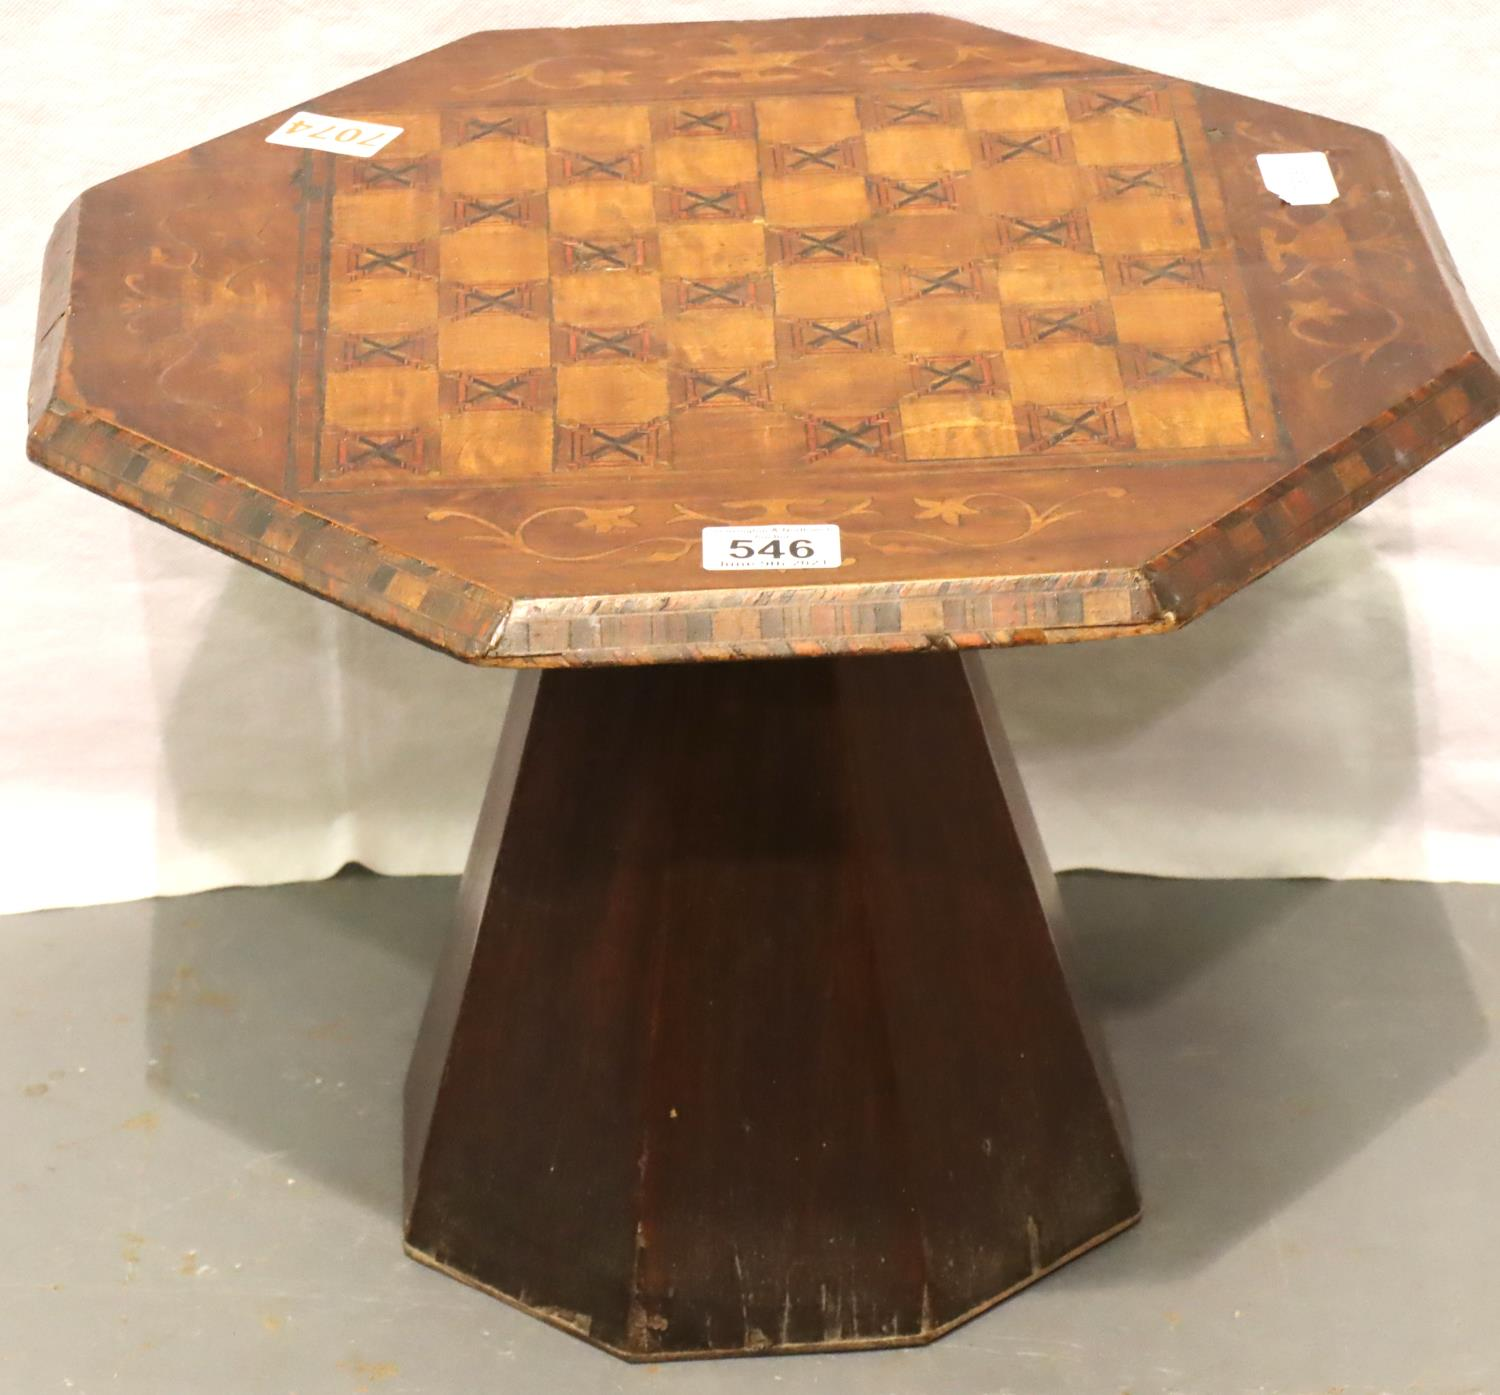 Scratch built inlaid chess top table. 43 x 43 x 32 cm H. Not available for in-house P&P, contact